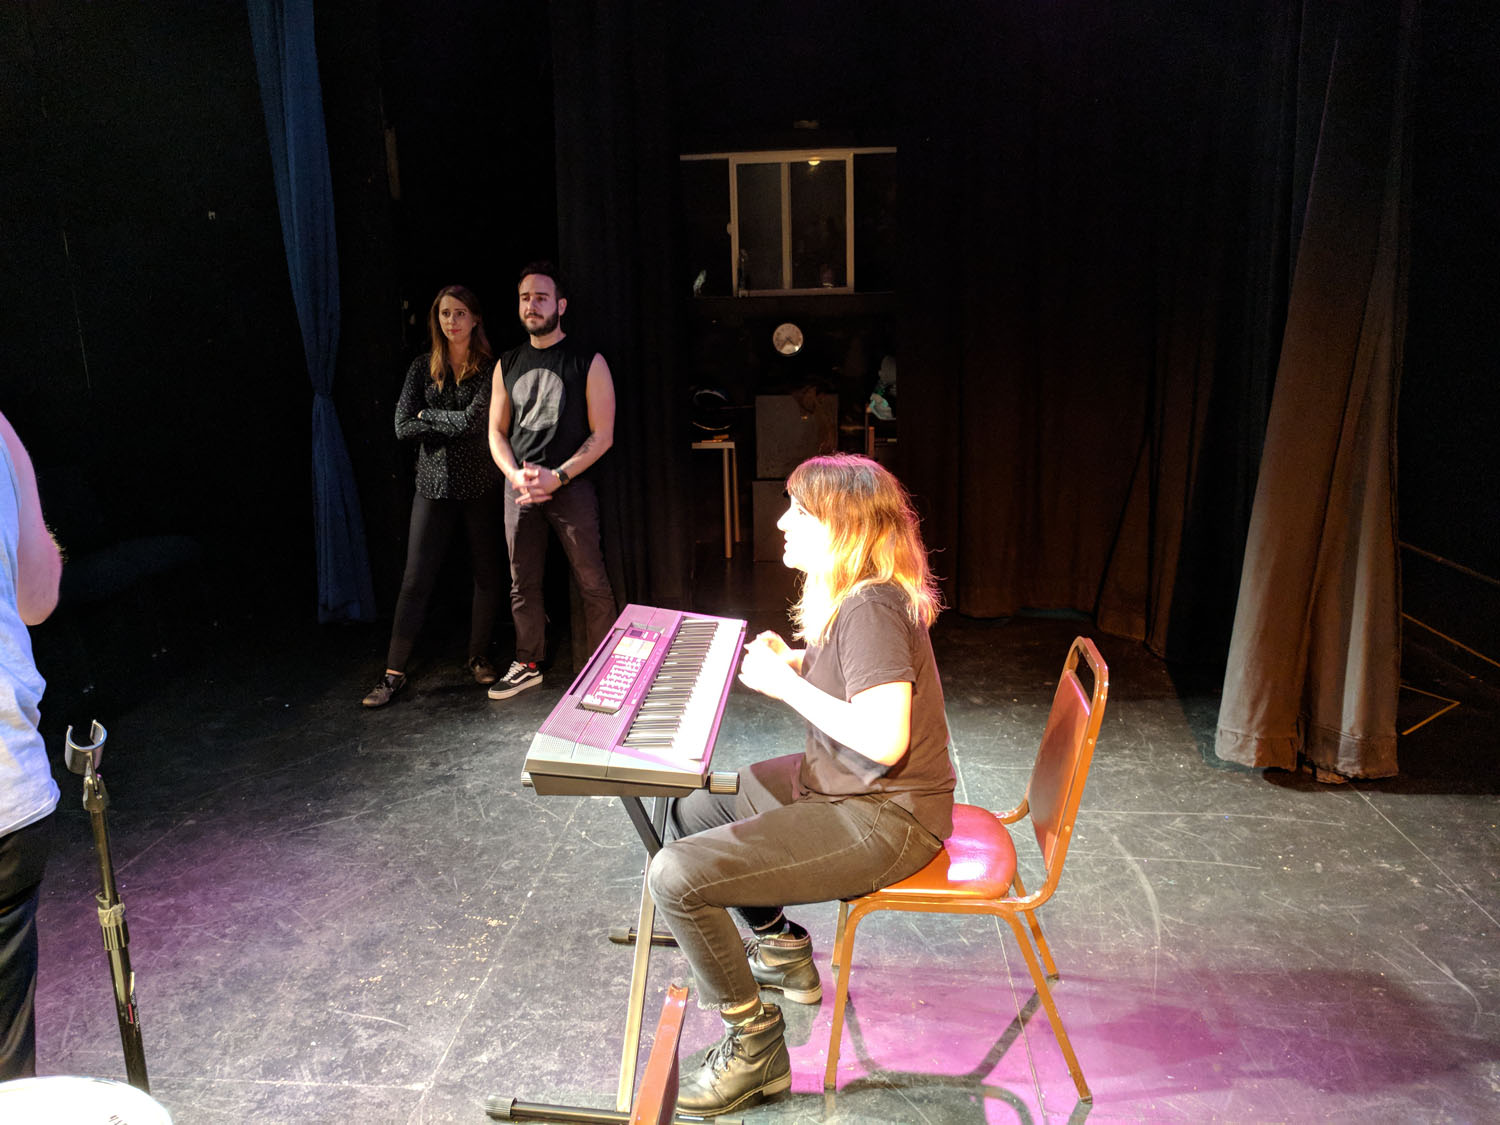 Alonya Eisenberg, Greg Santos and Alisha Ketry at PianoFight for SF Sketchfest